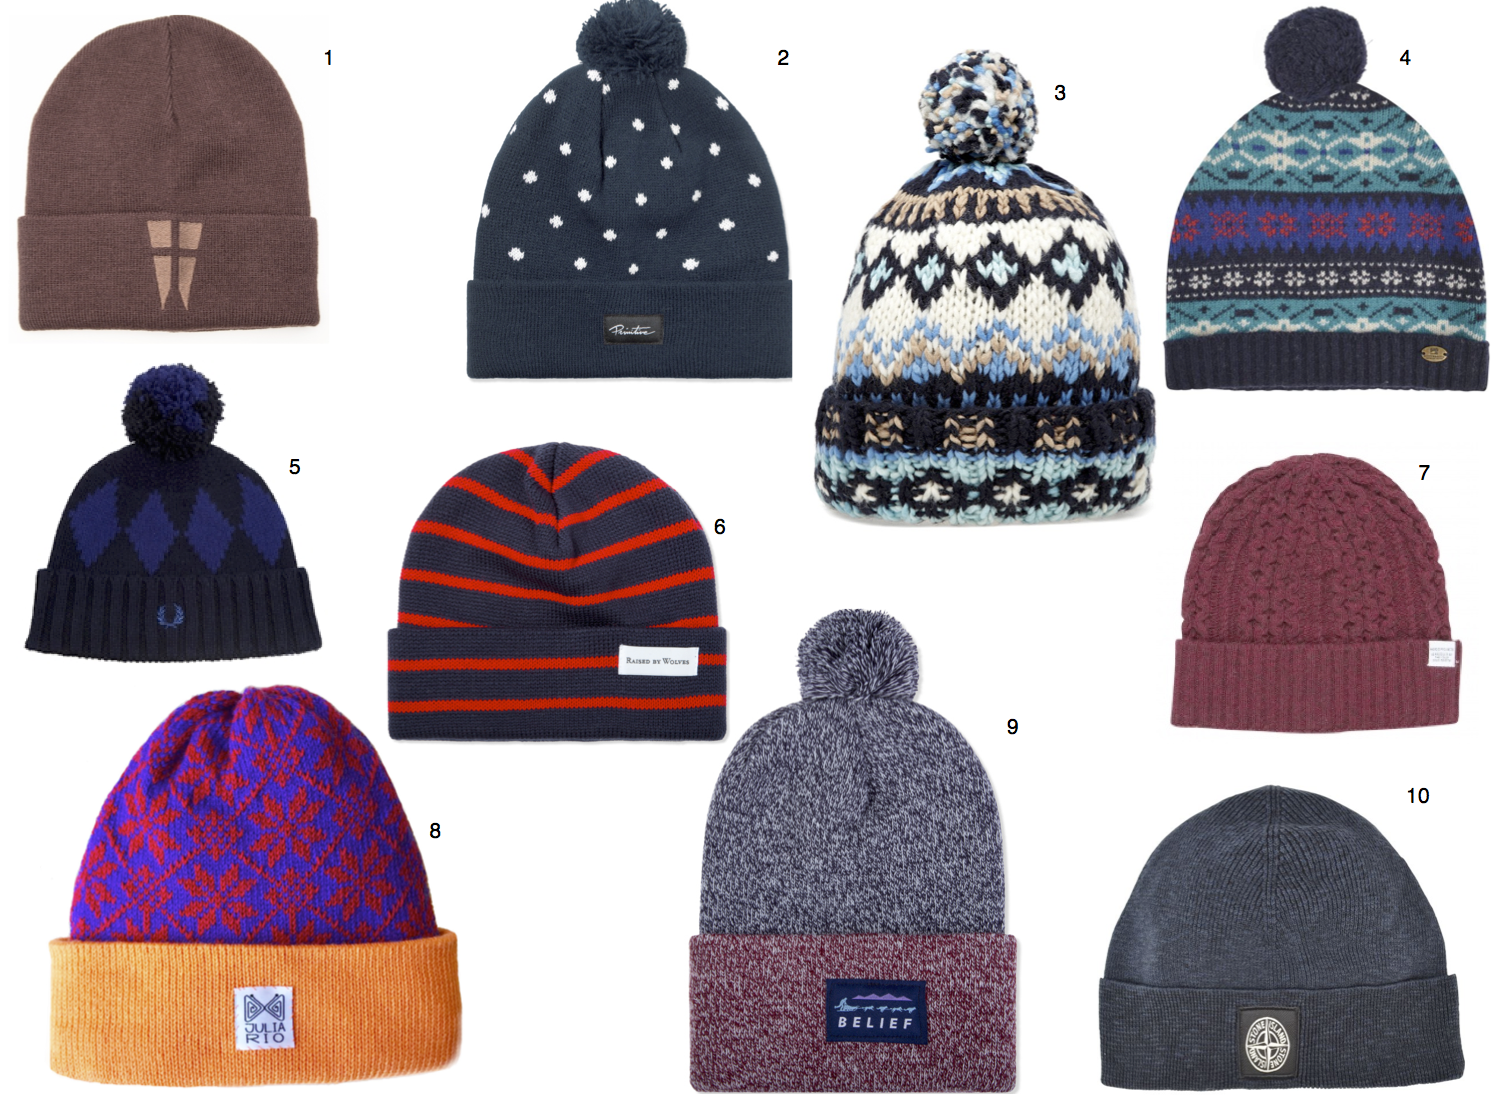 Pom Knit Hats, Beanies, Winter Accessories